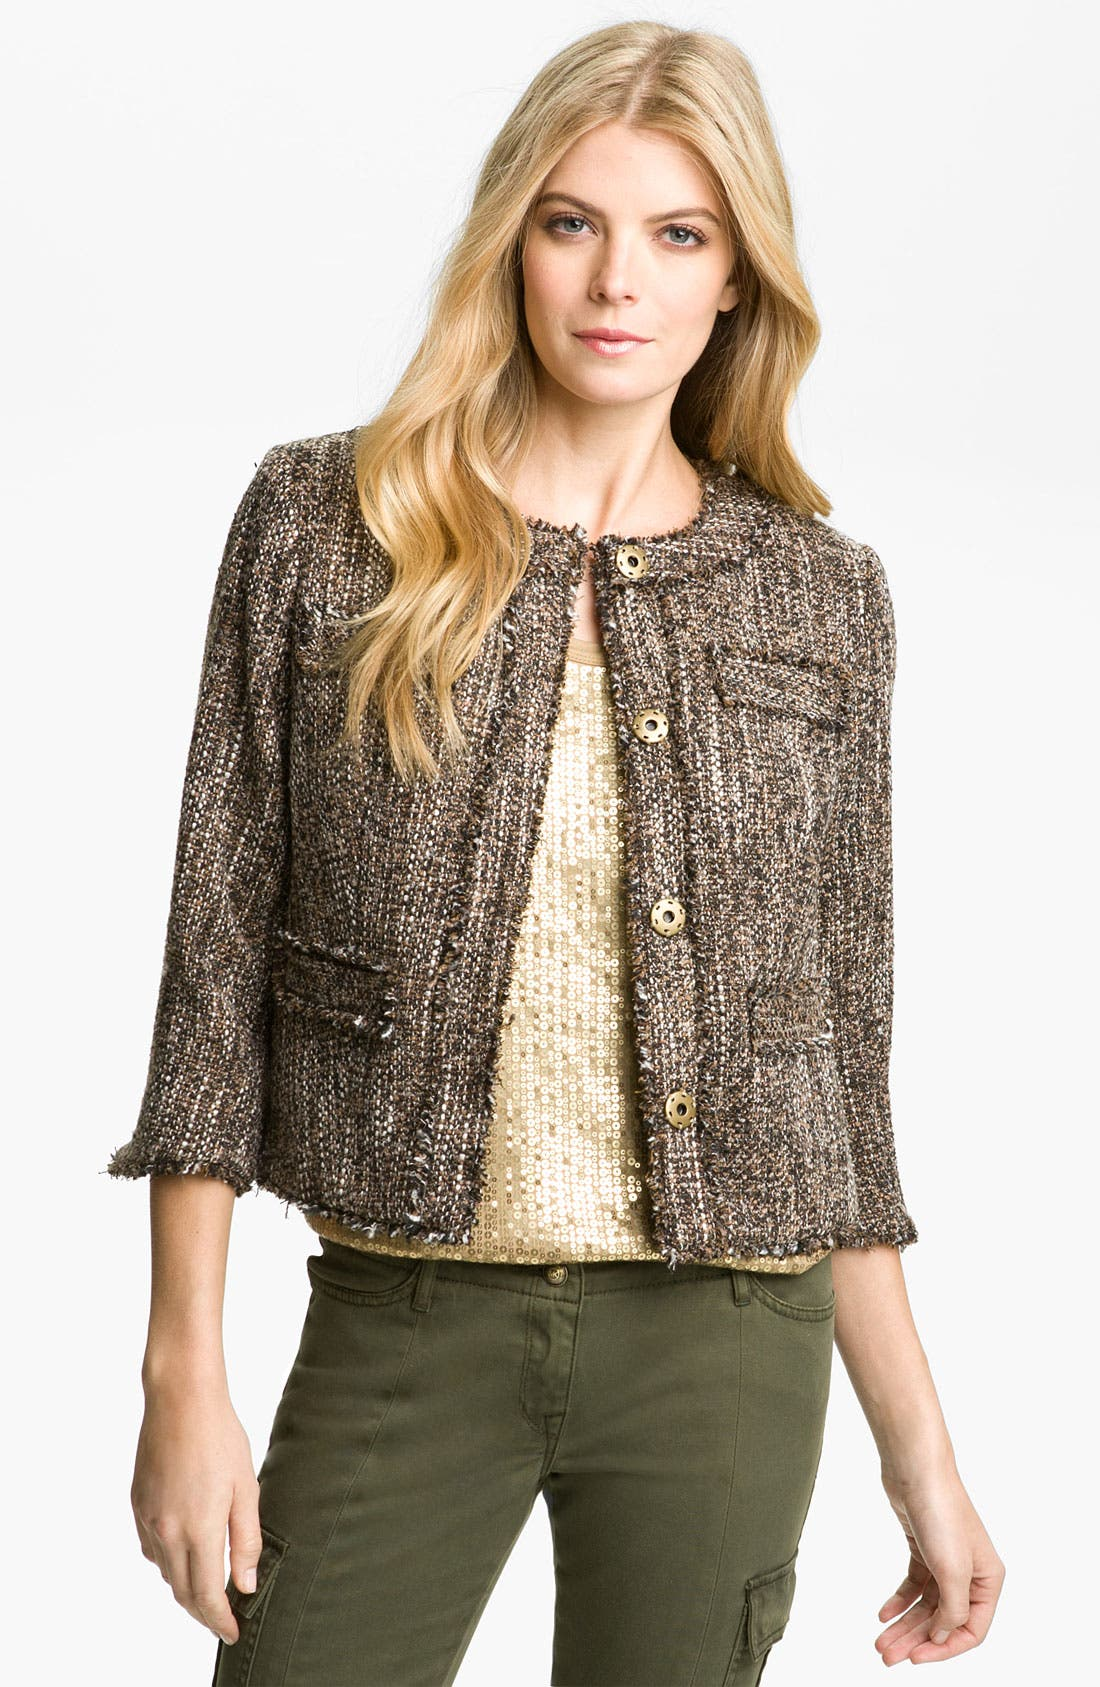 Alternate Image 1 Selected - MICHAEL Michael Kors Tweed Knit Jacket (Petite)